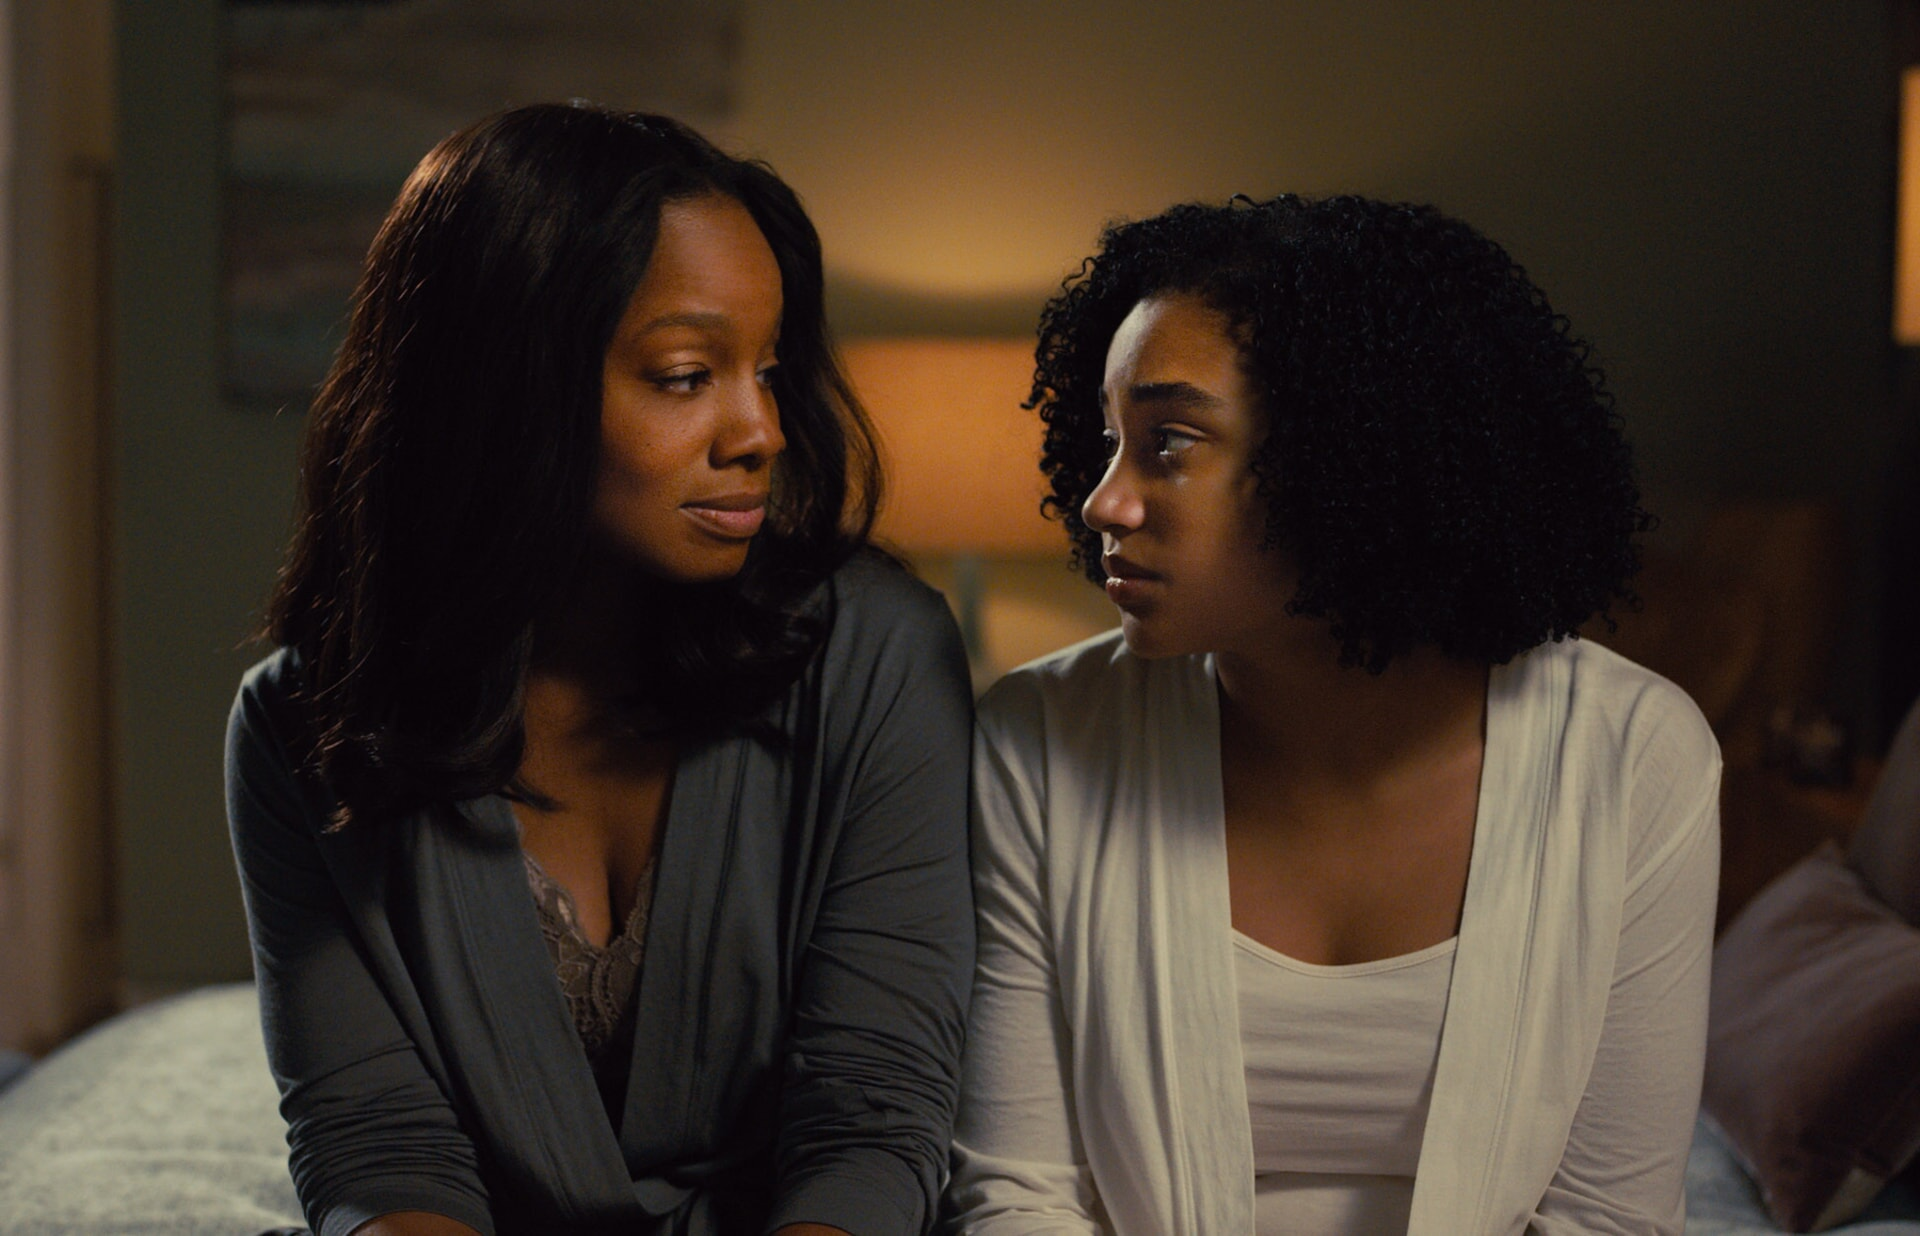 """ANIKA NONI ROSE as Pauline and AMANDLA STENBERG as Maddy in the Warner Bros. Pictures and Metro-Goldwyn-Mayer Pictures romantic drama """"EVERYTHING, EVERYTHING,"""" a Warner Bros. Pictures release."""